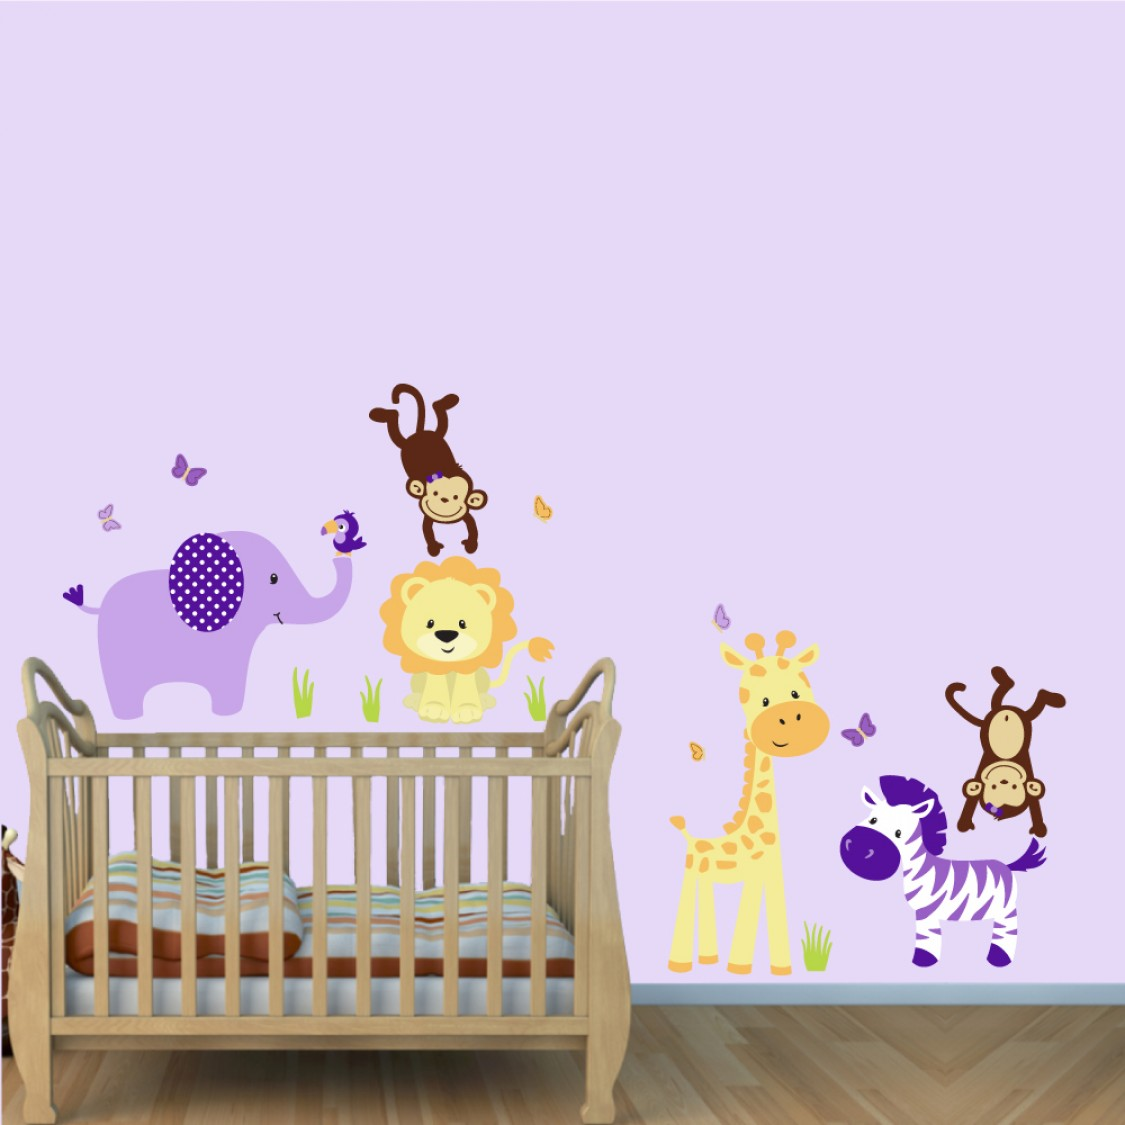 purple jungle wall decals with lion stickers for girls rooms - purple nursery jungle wall decals with lion wall decal for girls rooms